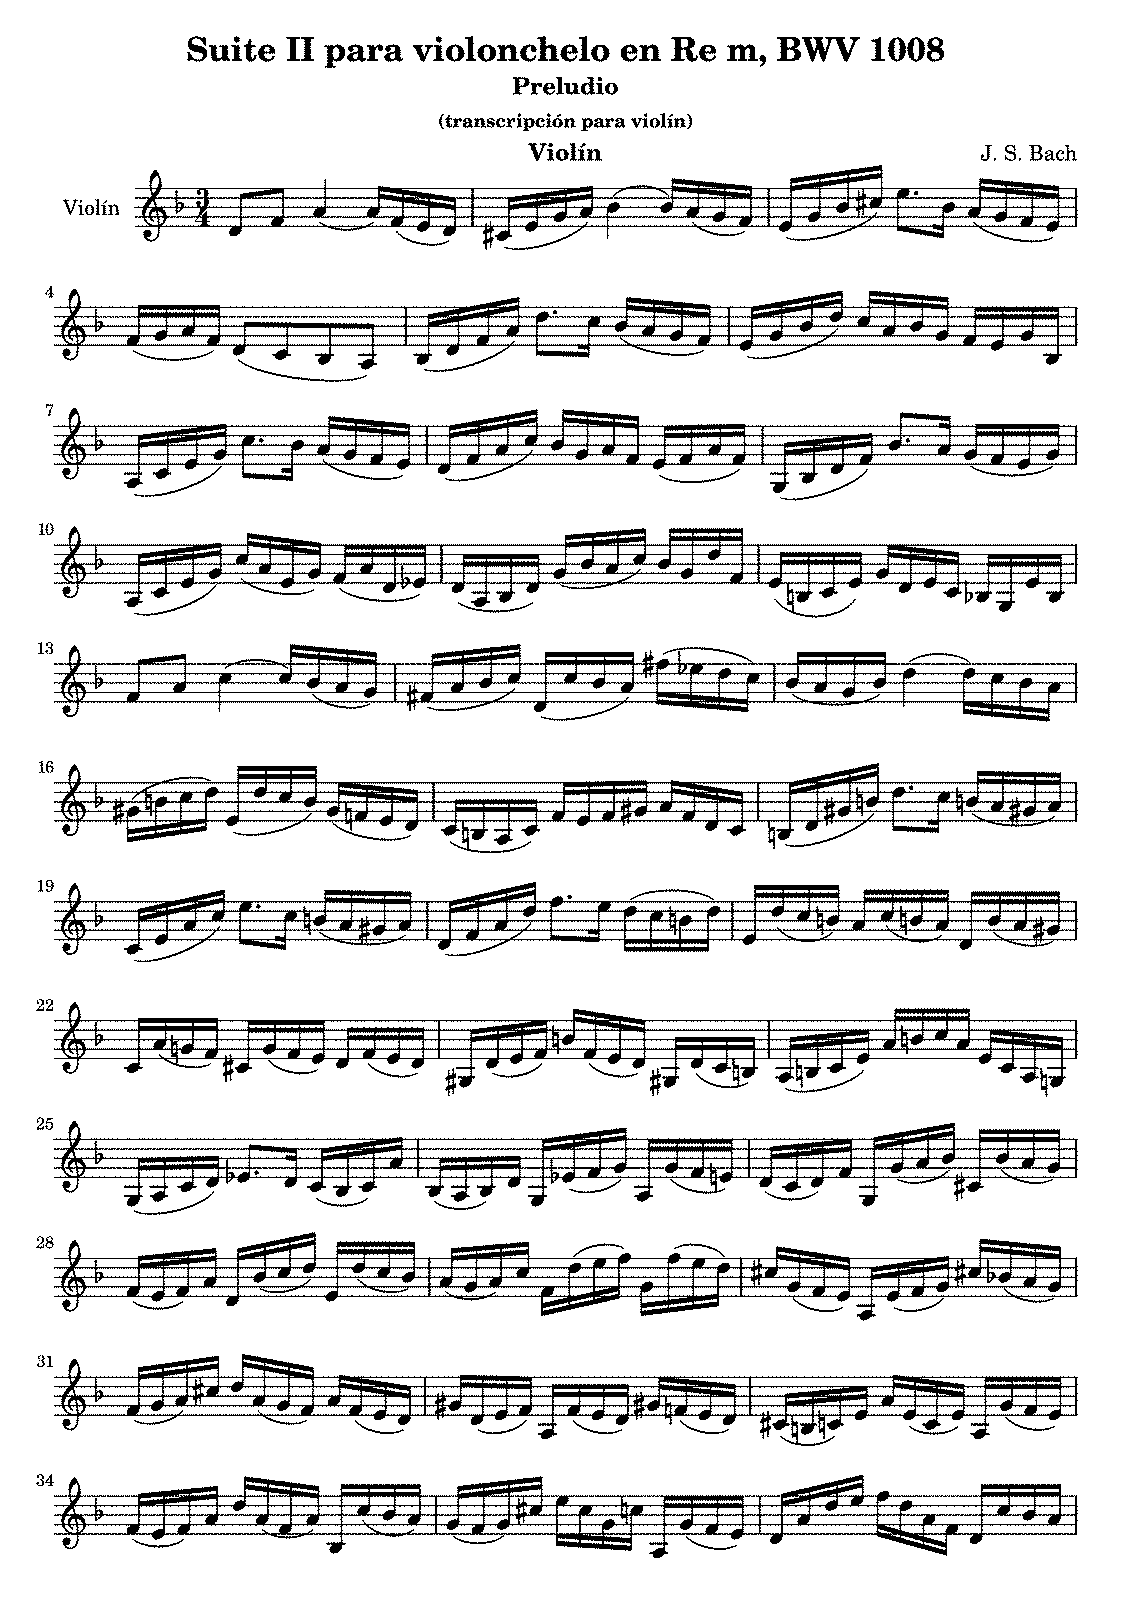 PMLP164350-suite en re menor para chelo (transc violin).pdf